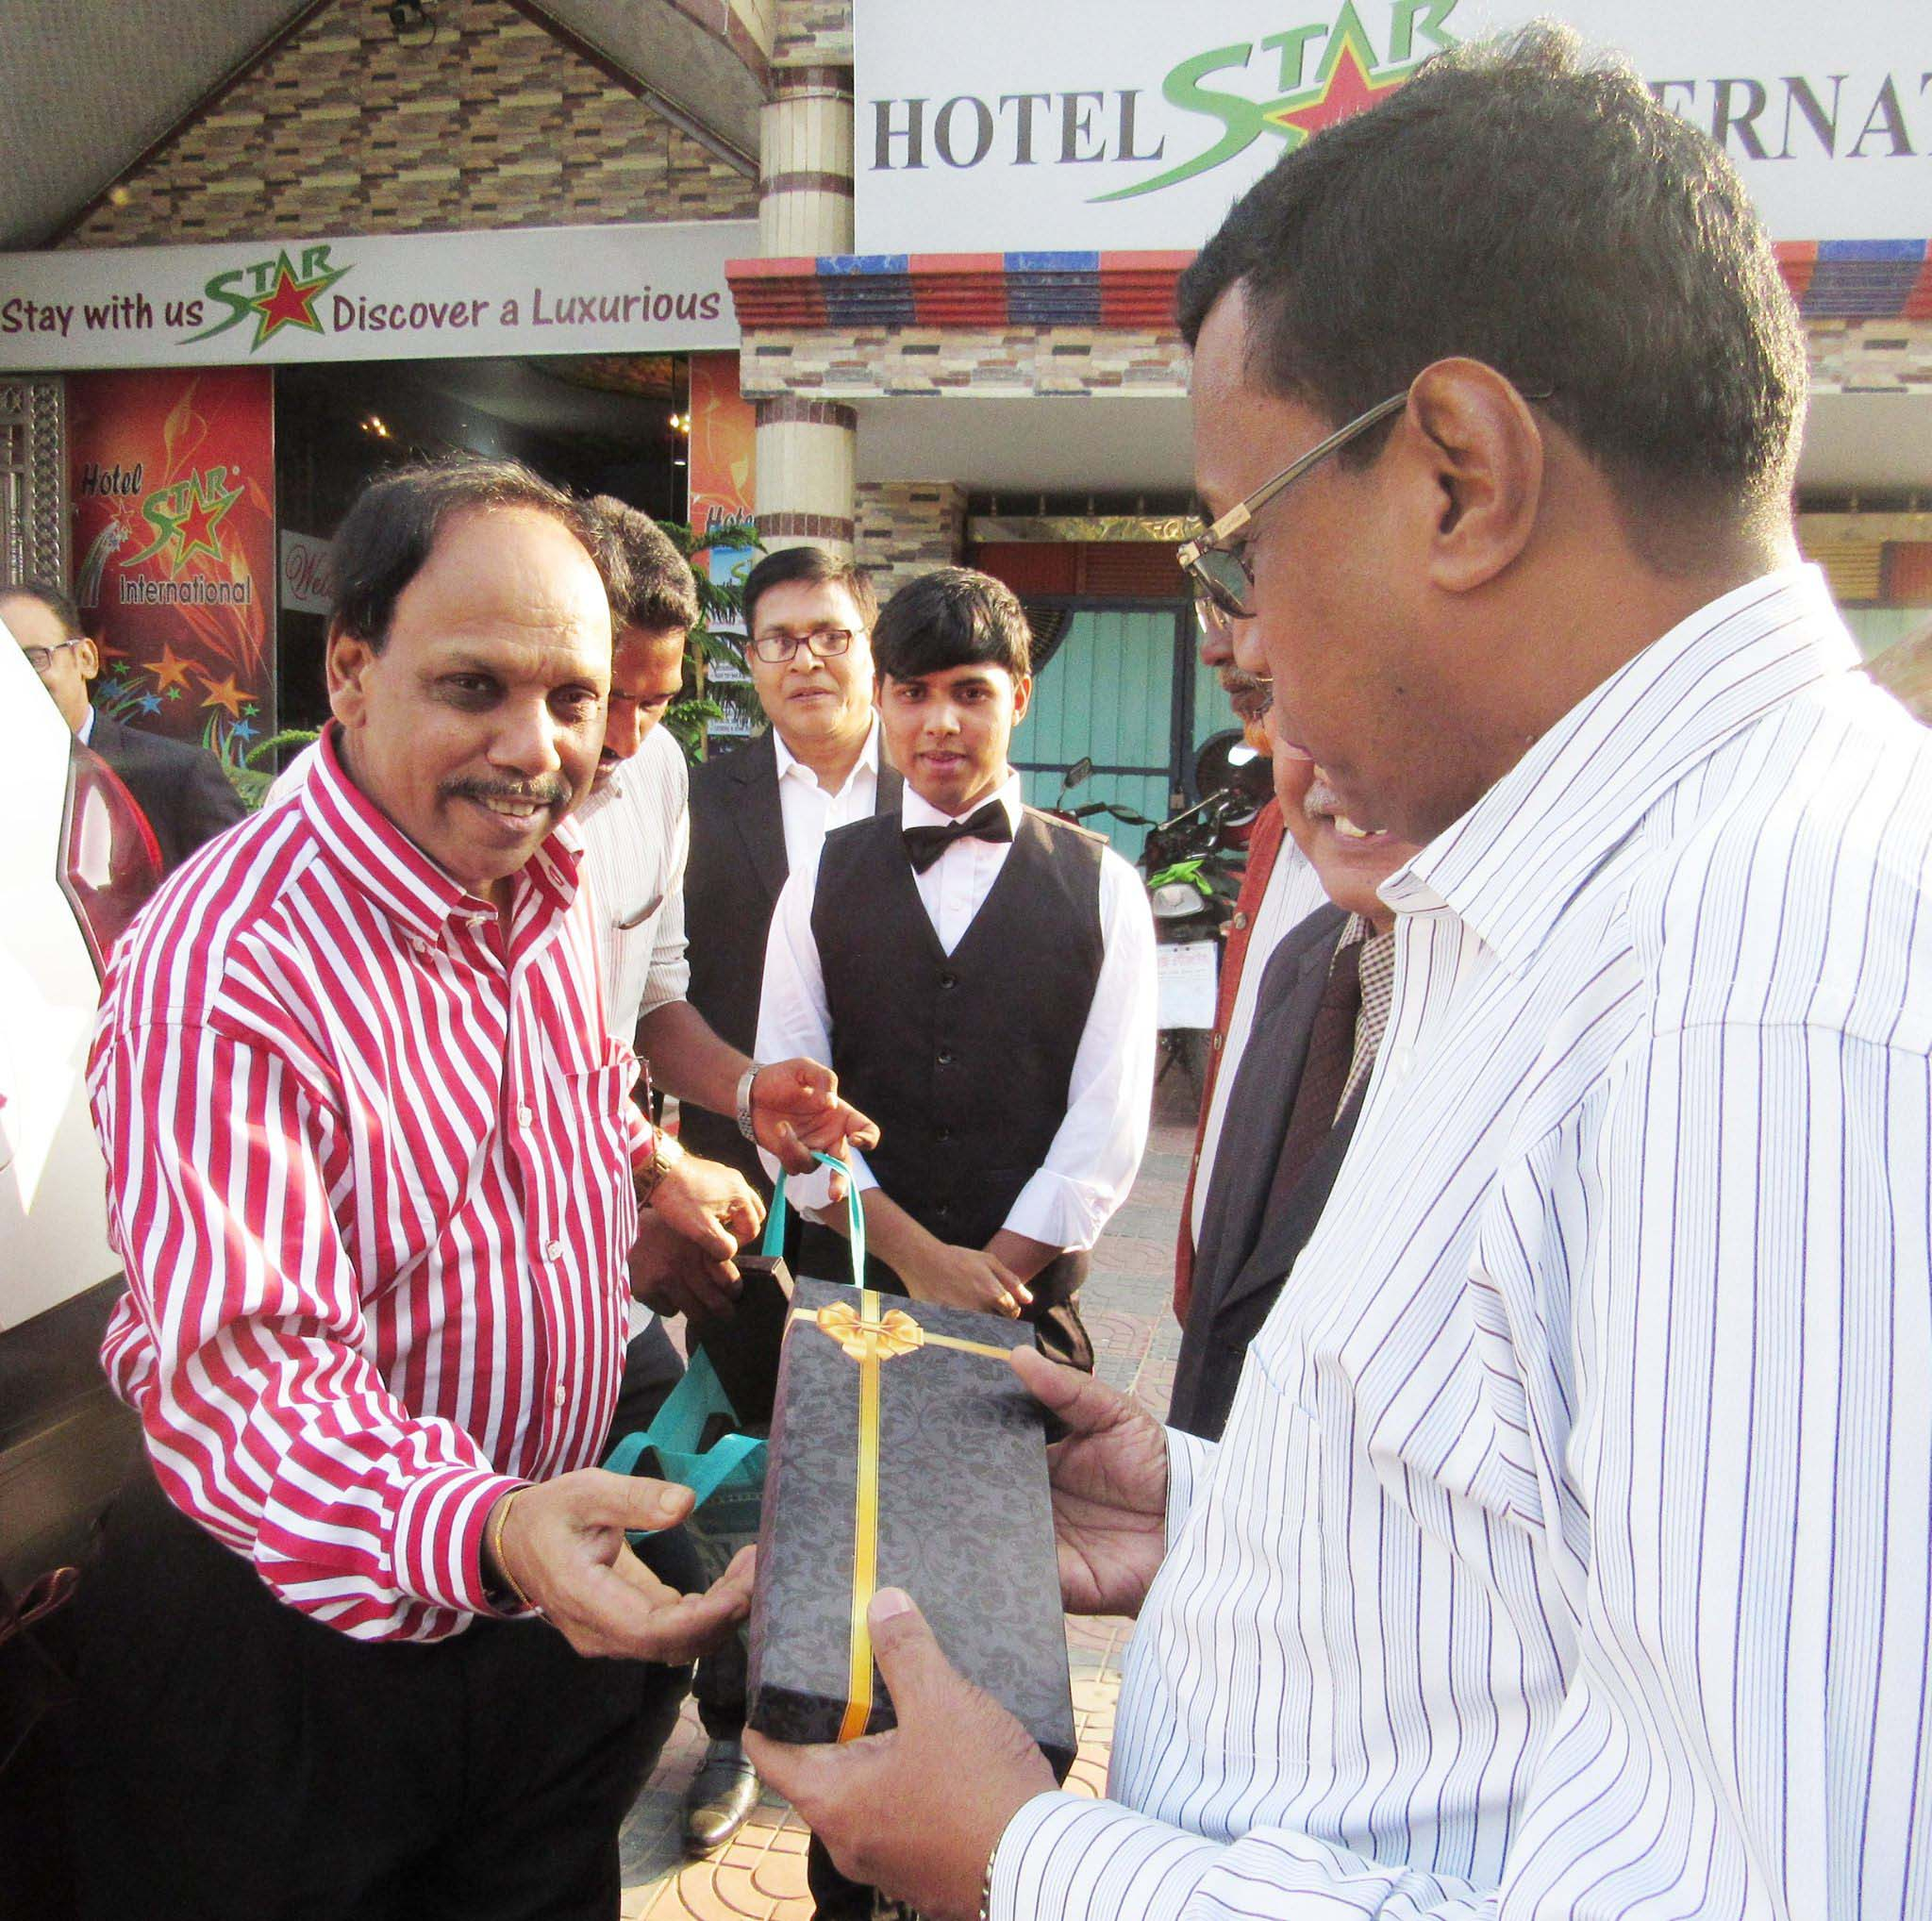 Hotel Star Chairman received a gift from Our Honorable Guest